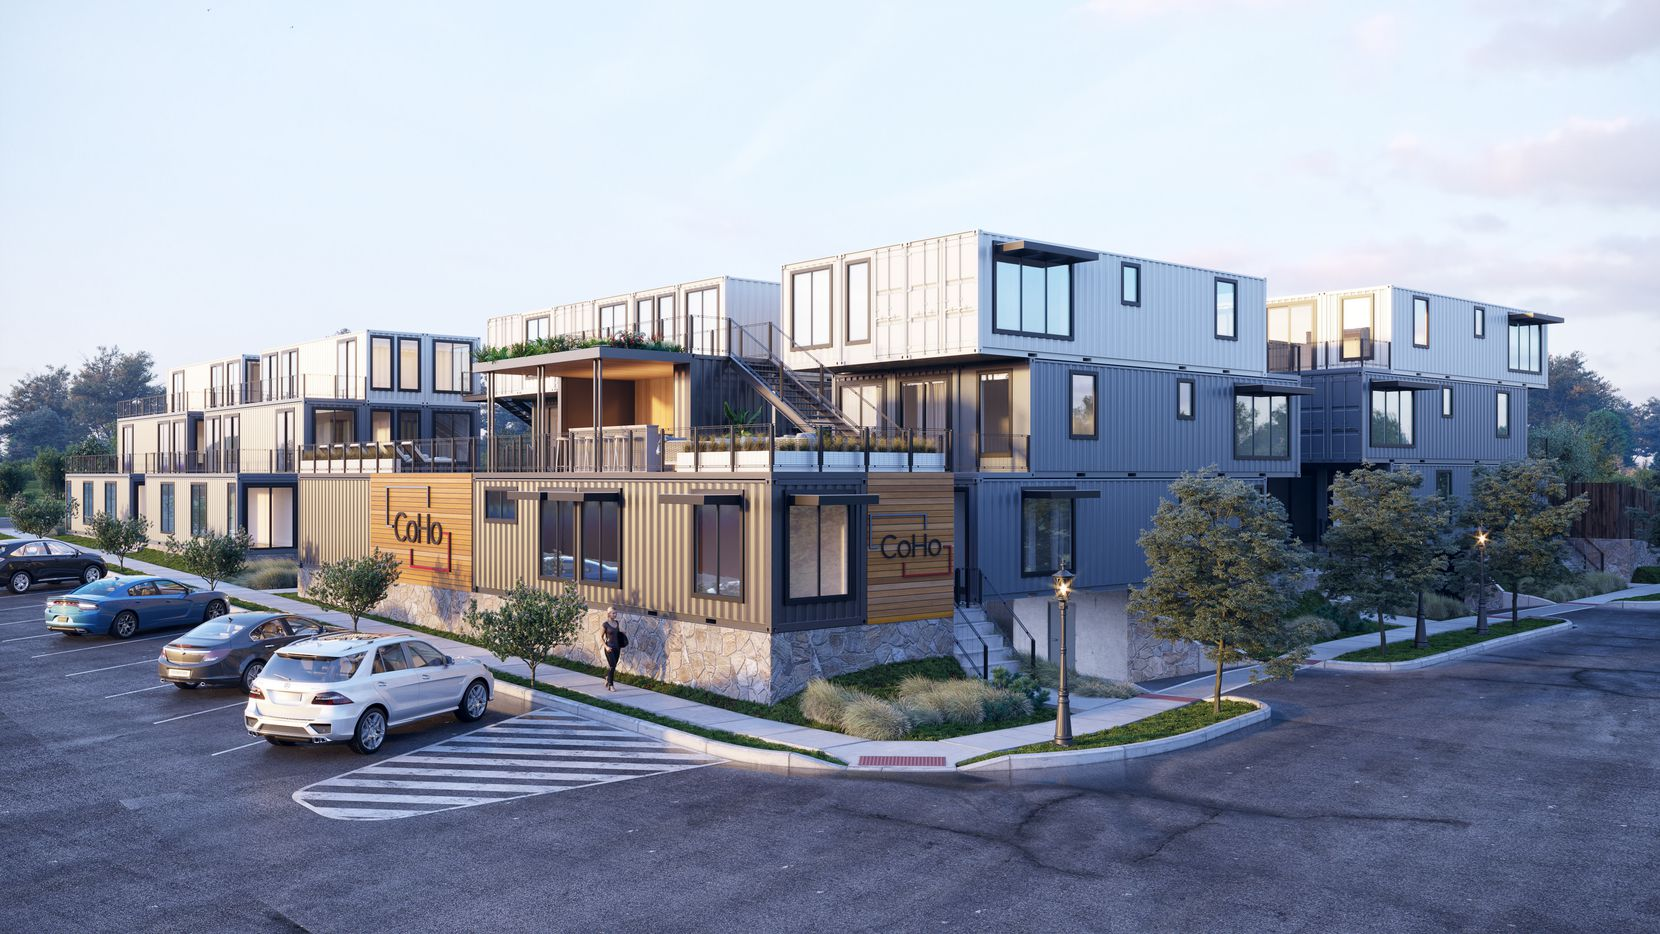 The 34-unit CoHo apartments south of downtown Fort Worth will be constructed out of shipping containers.